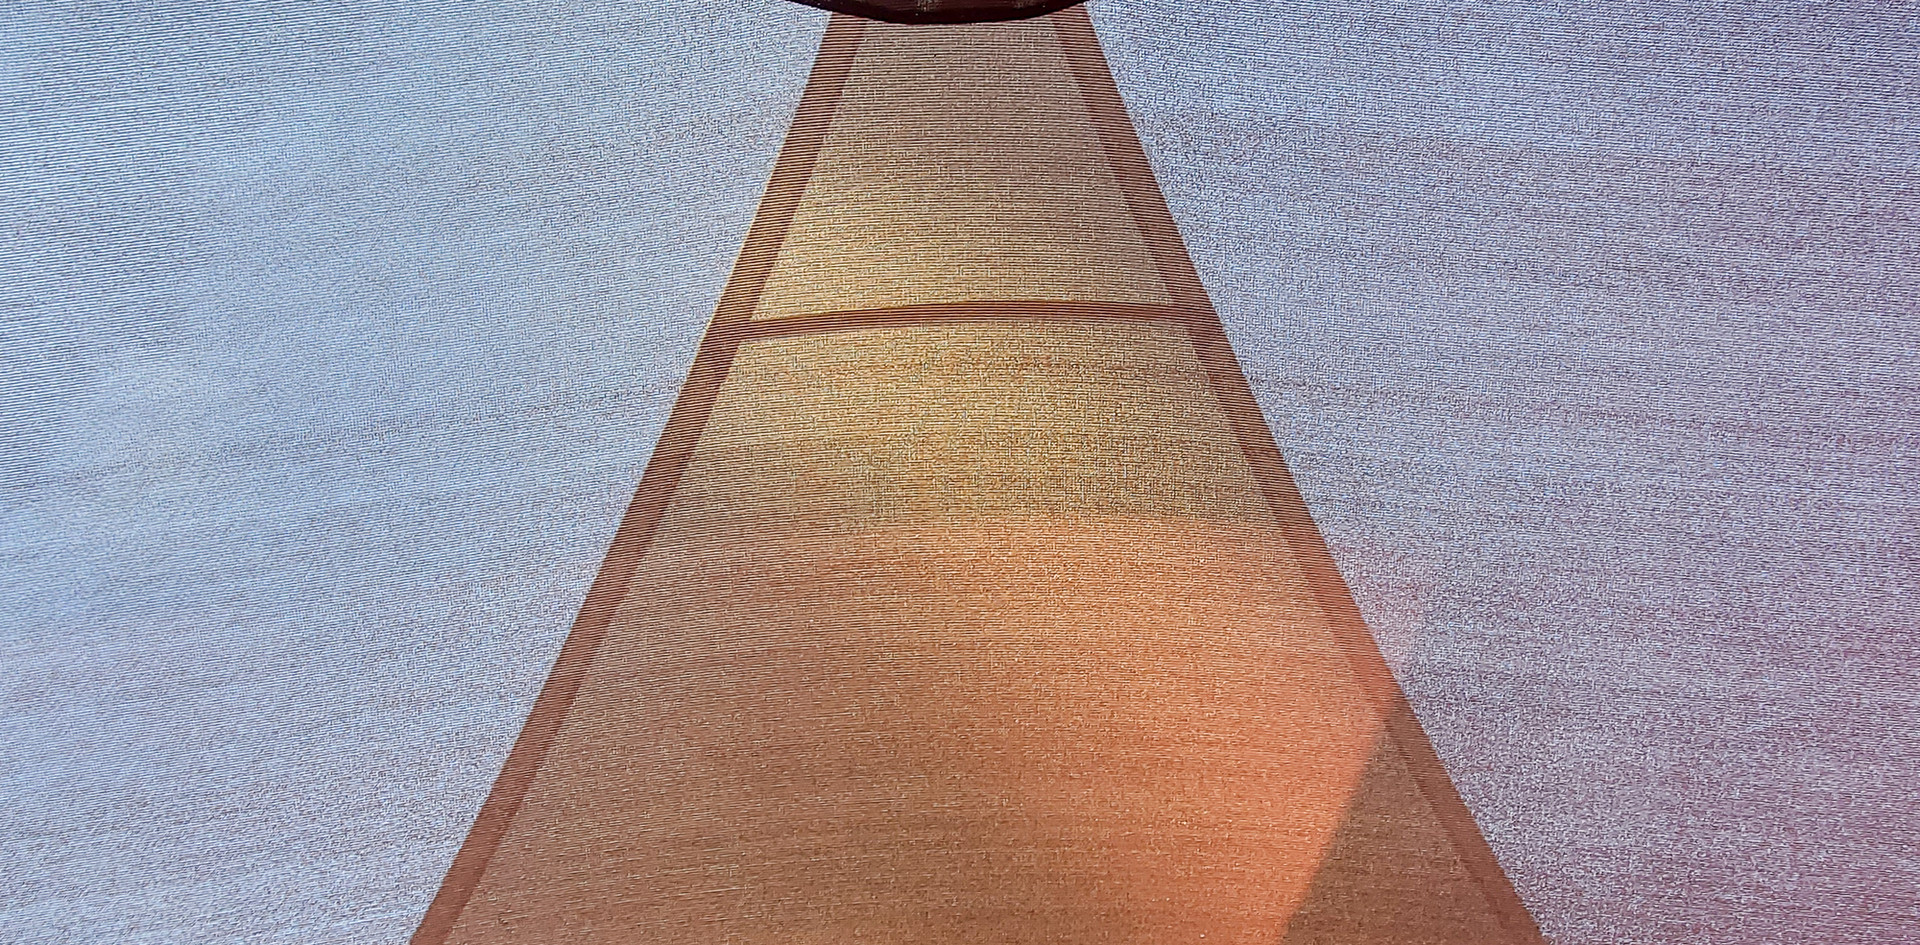 Overlapping Patio Sails - fabric close up